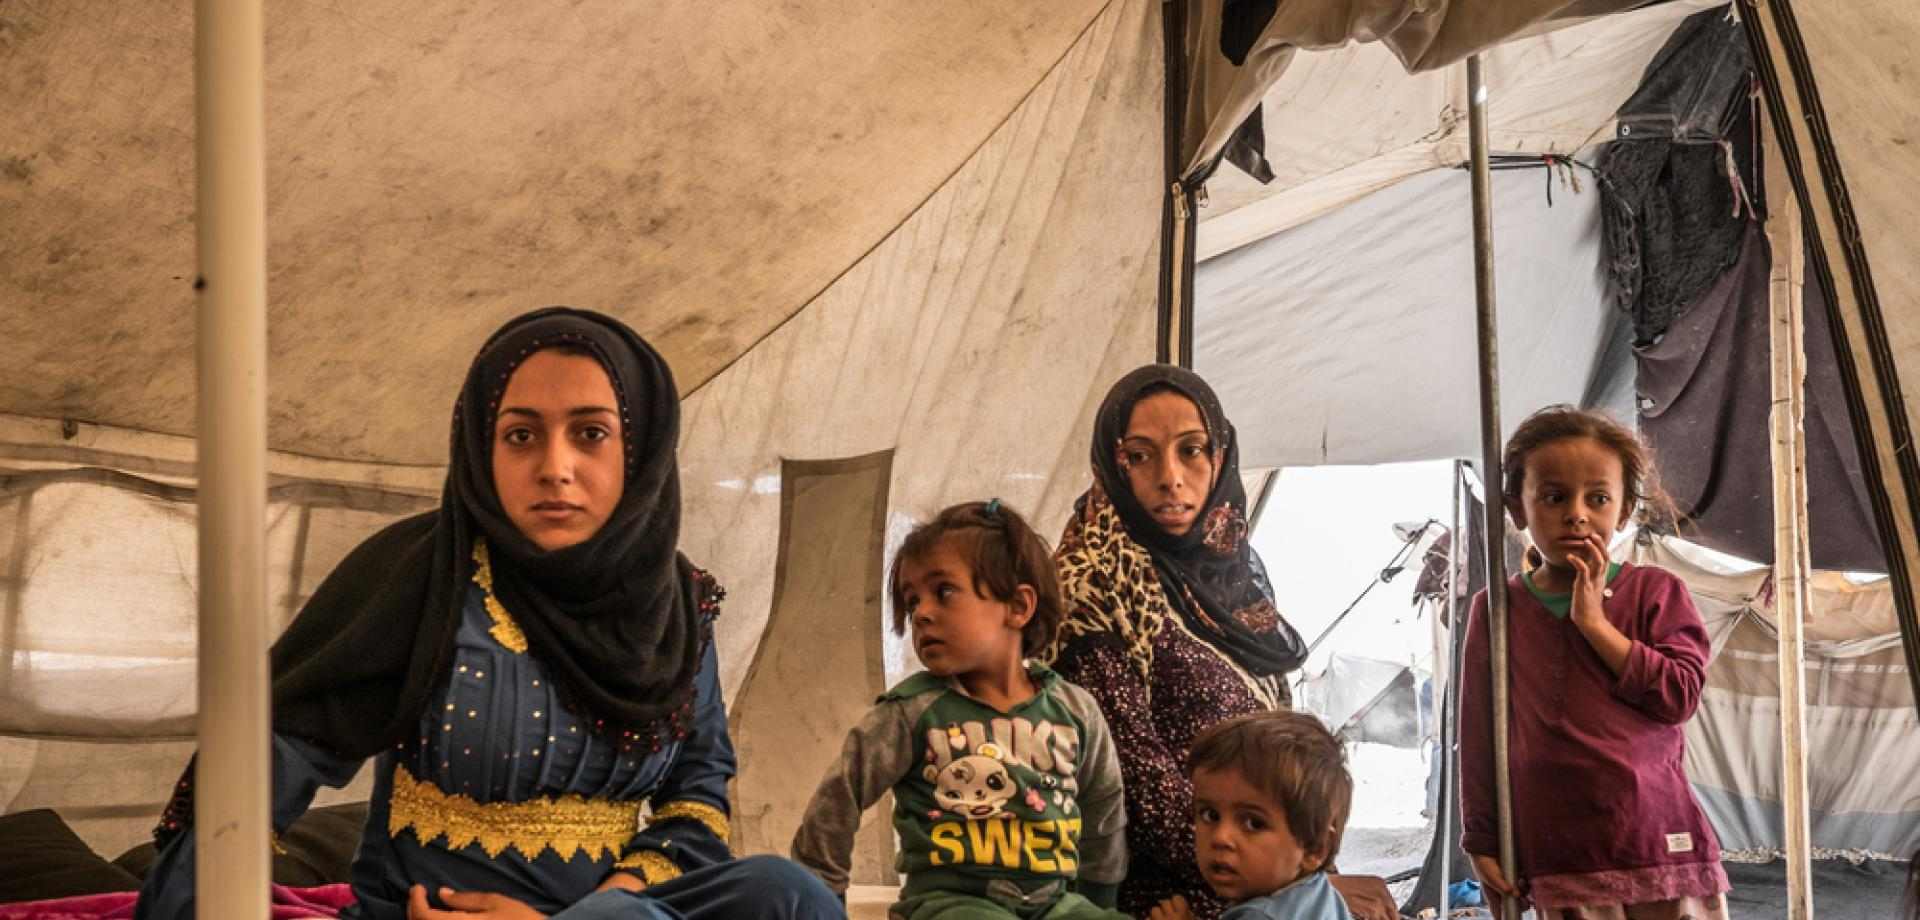 Refugee women in Ain Issa camp, Syria, September 2017